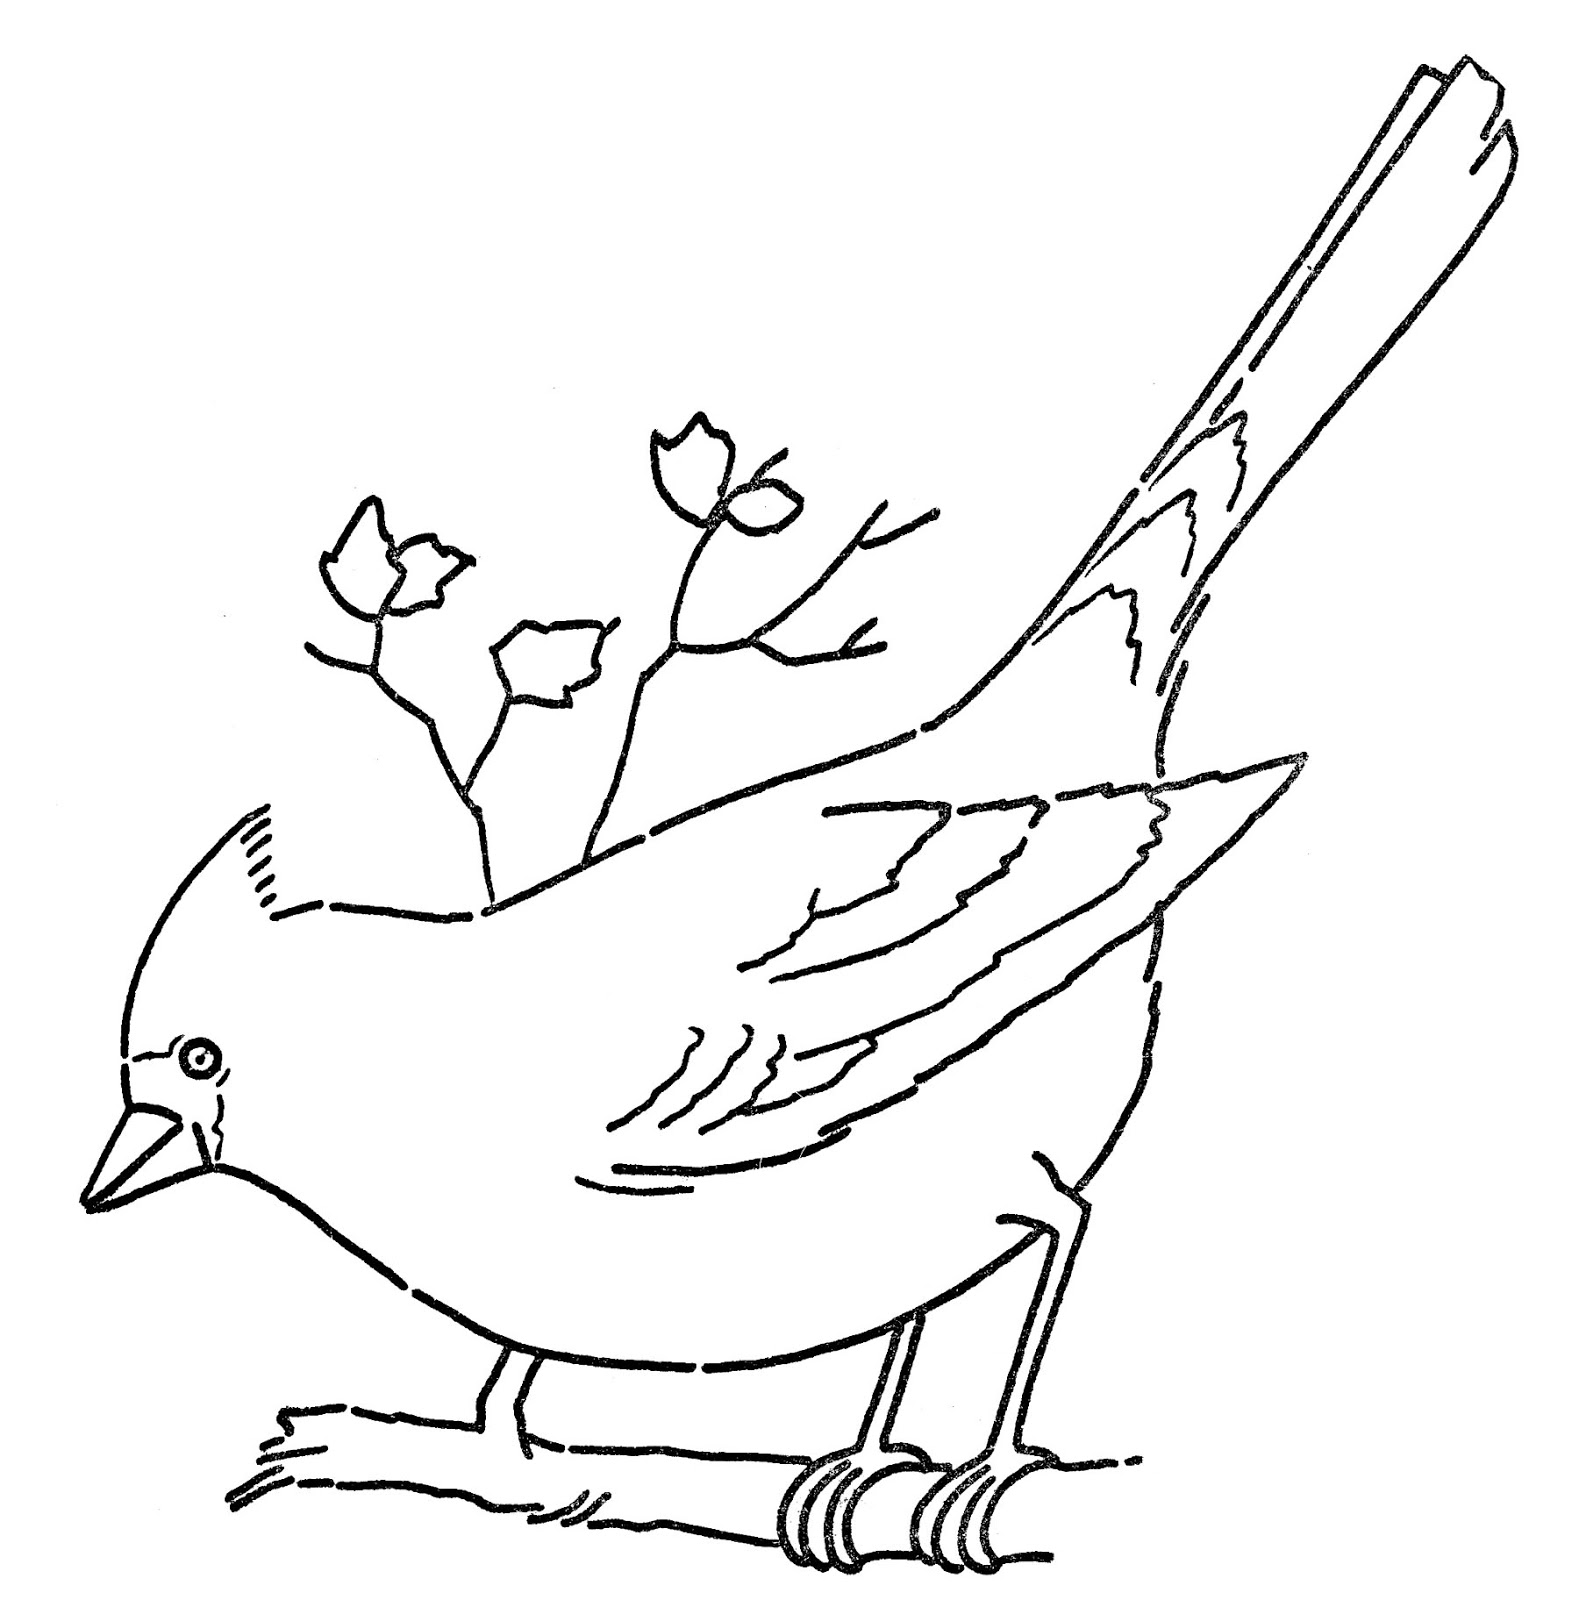 Line Art For Coloring : Line art coloring page cardinal on branch the